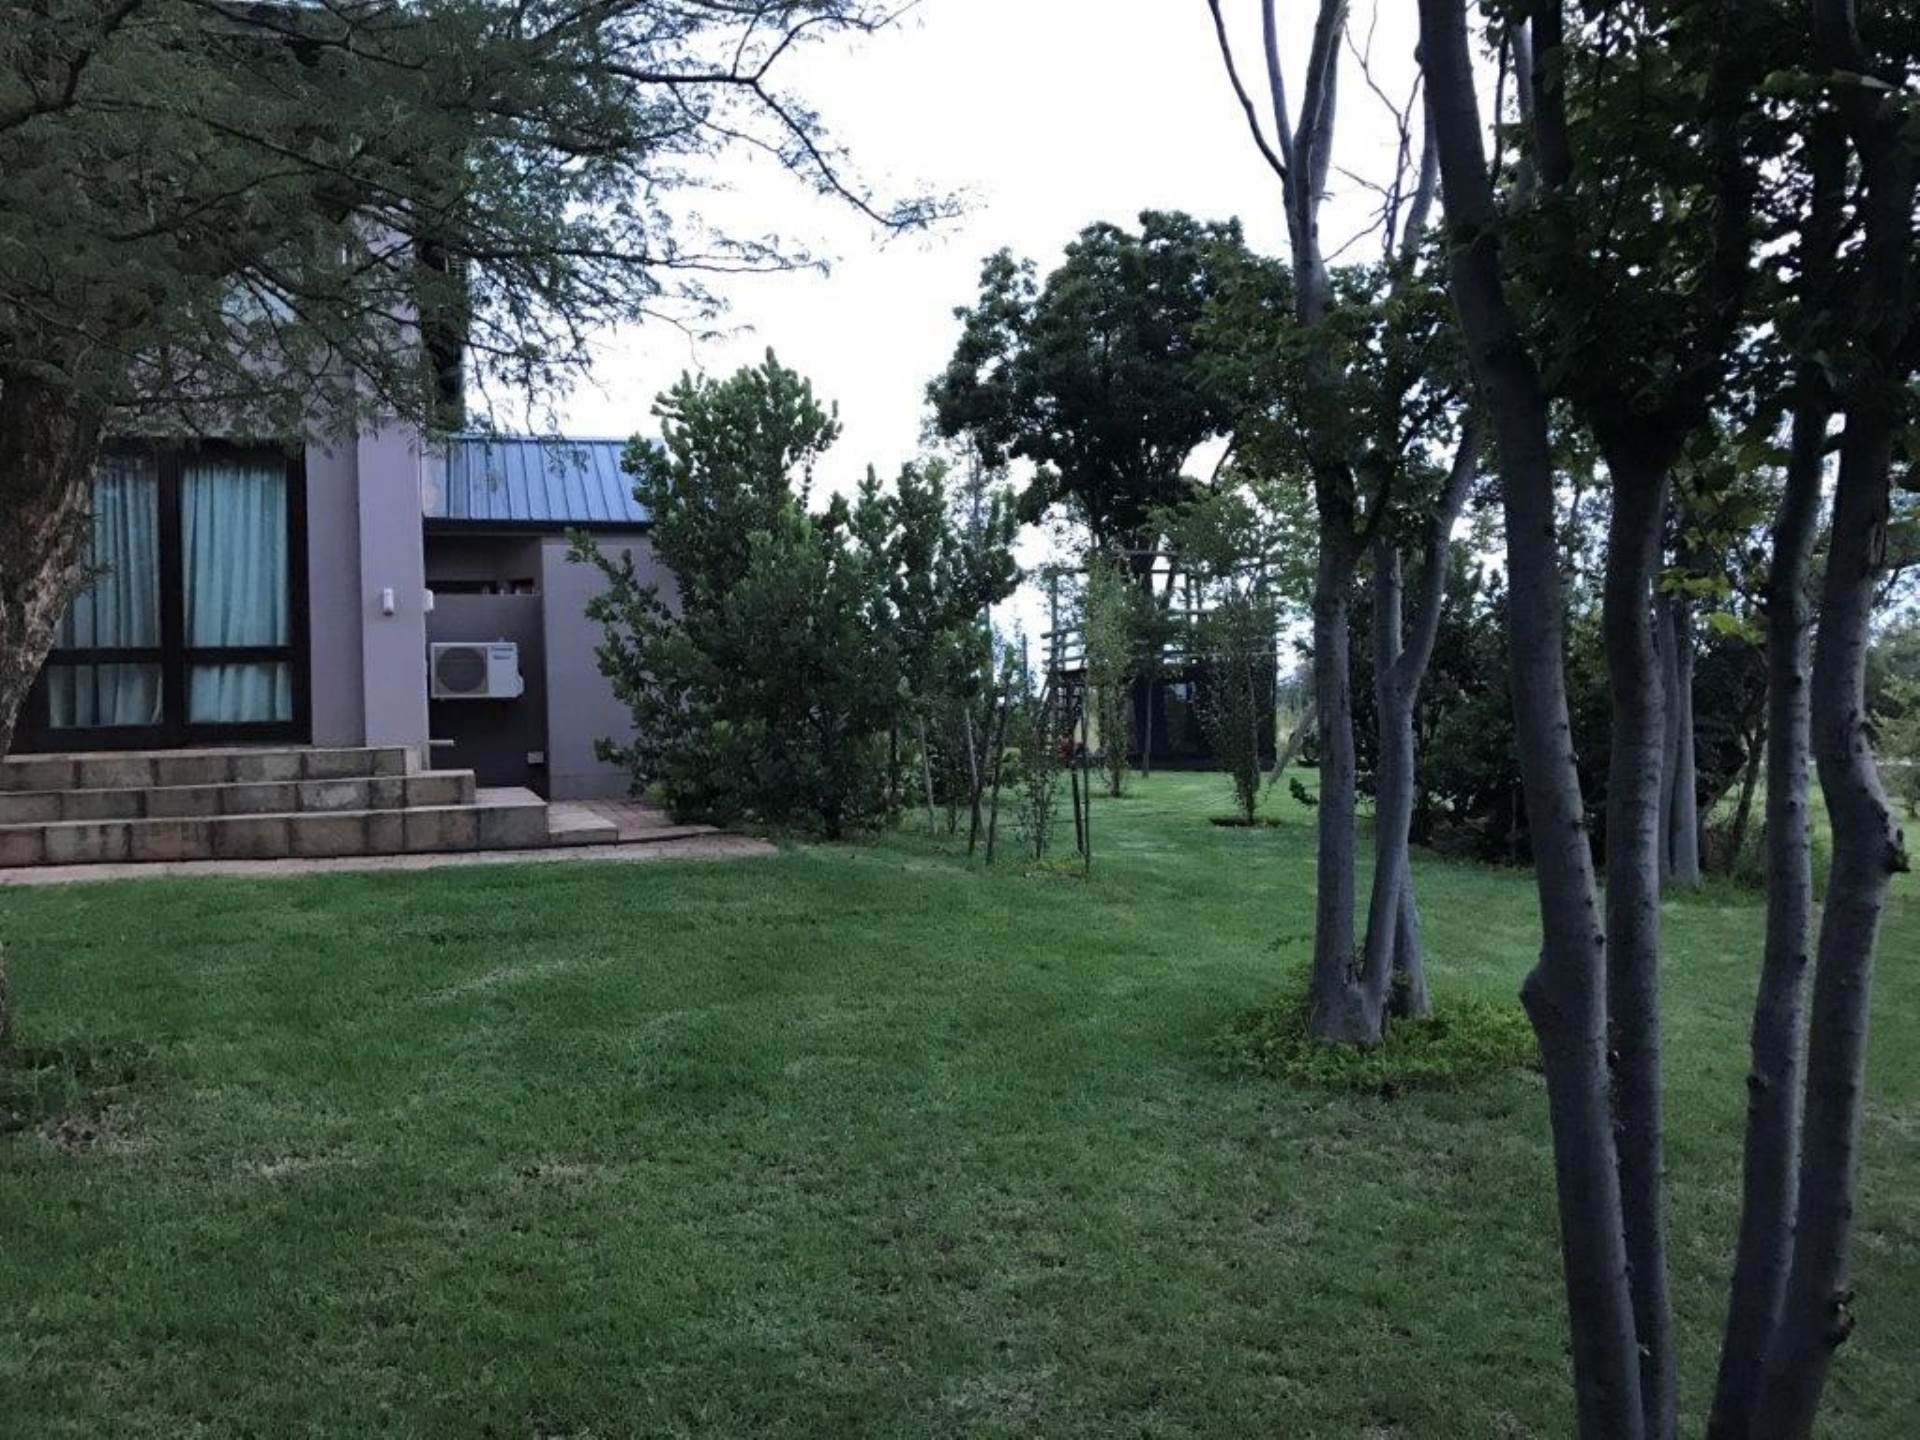 Rietvlei View Country Estate property for sale. Ref No: 13675032. Picture no 20